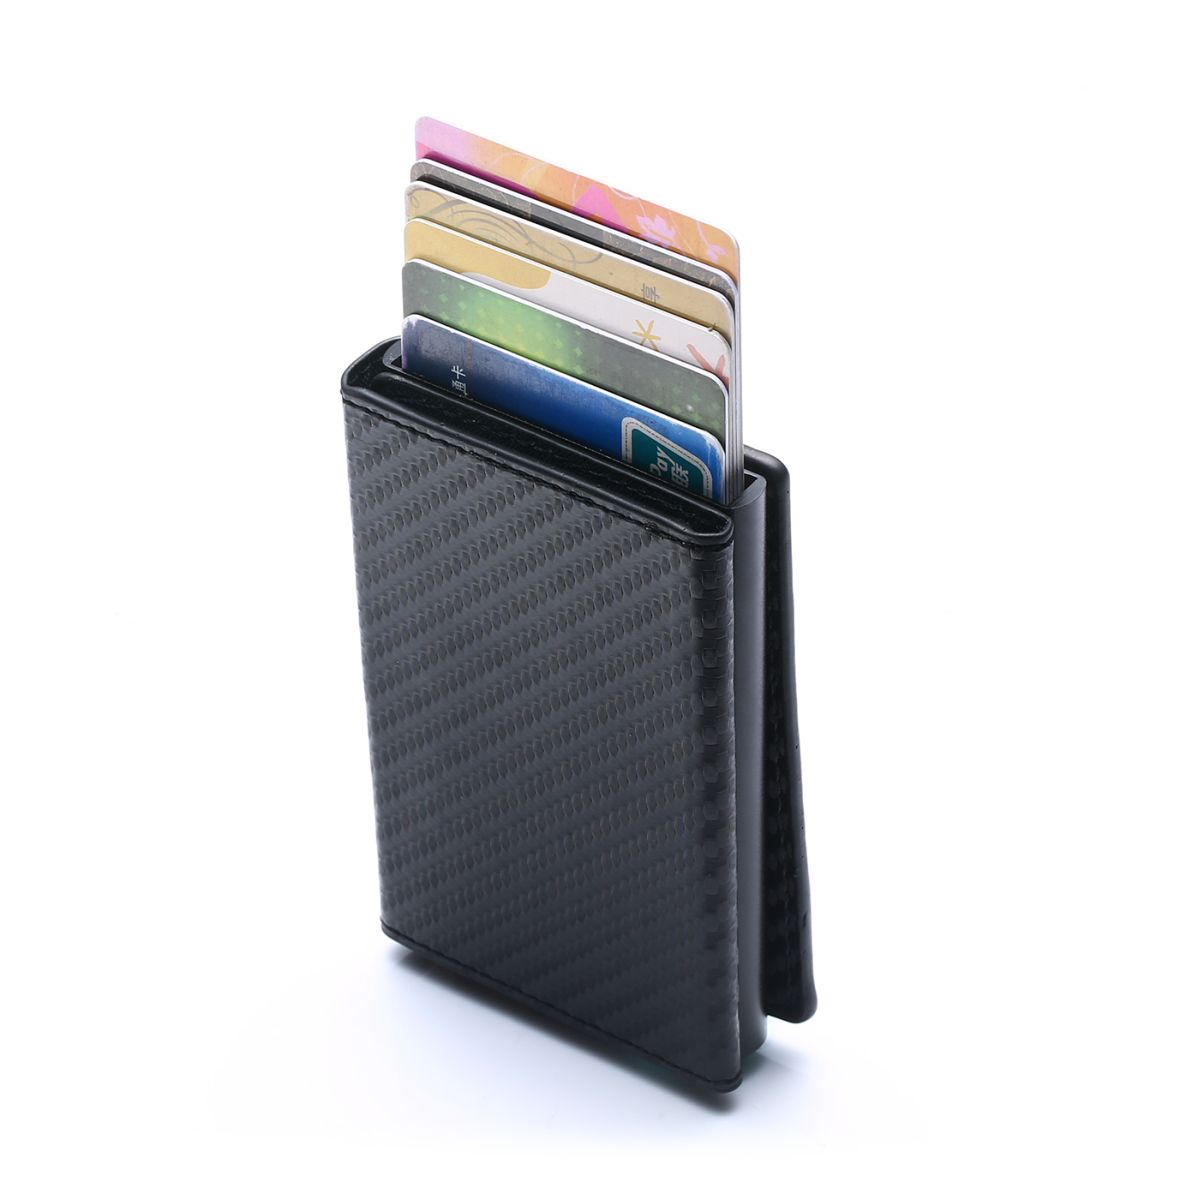 Aluminum Wallet With PU Leather And Zipper - Carbon